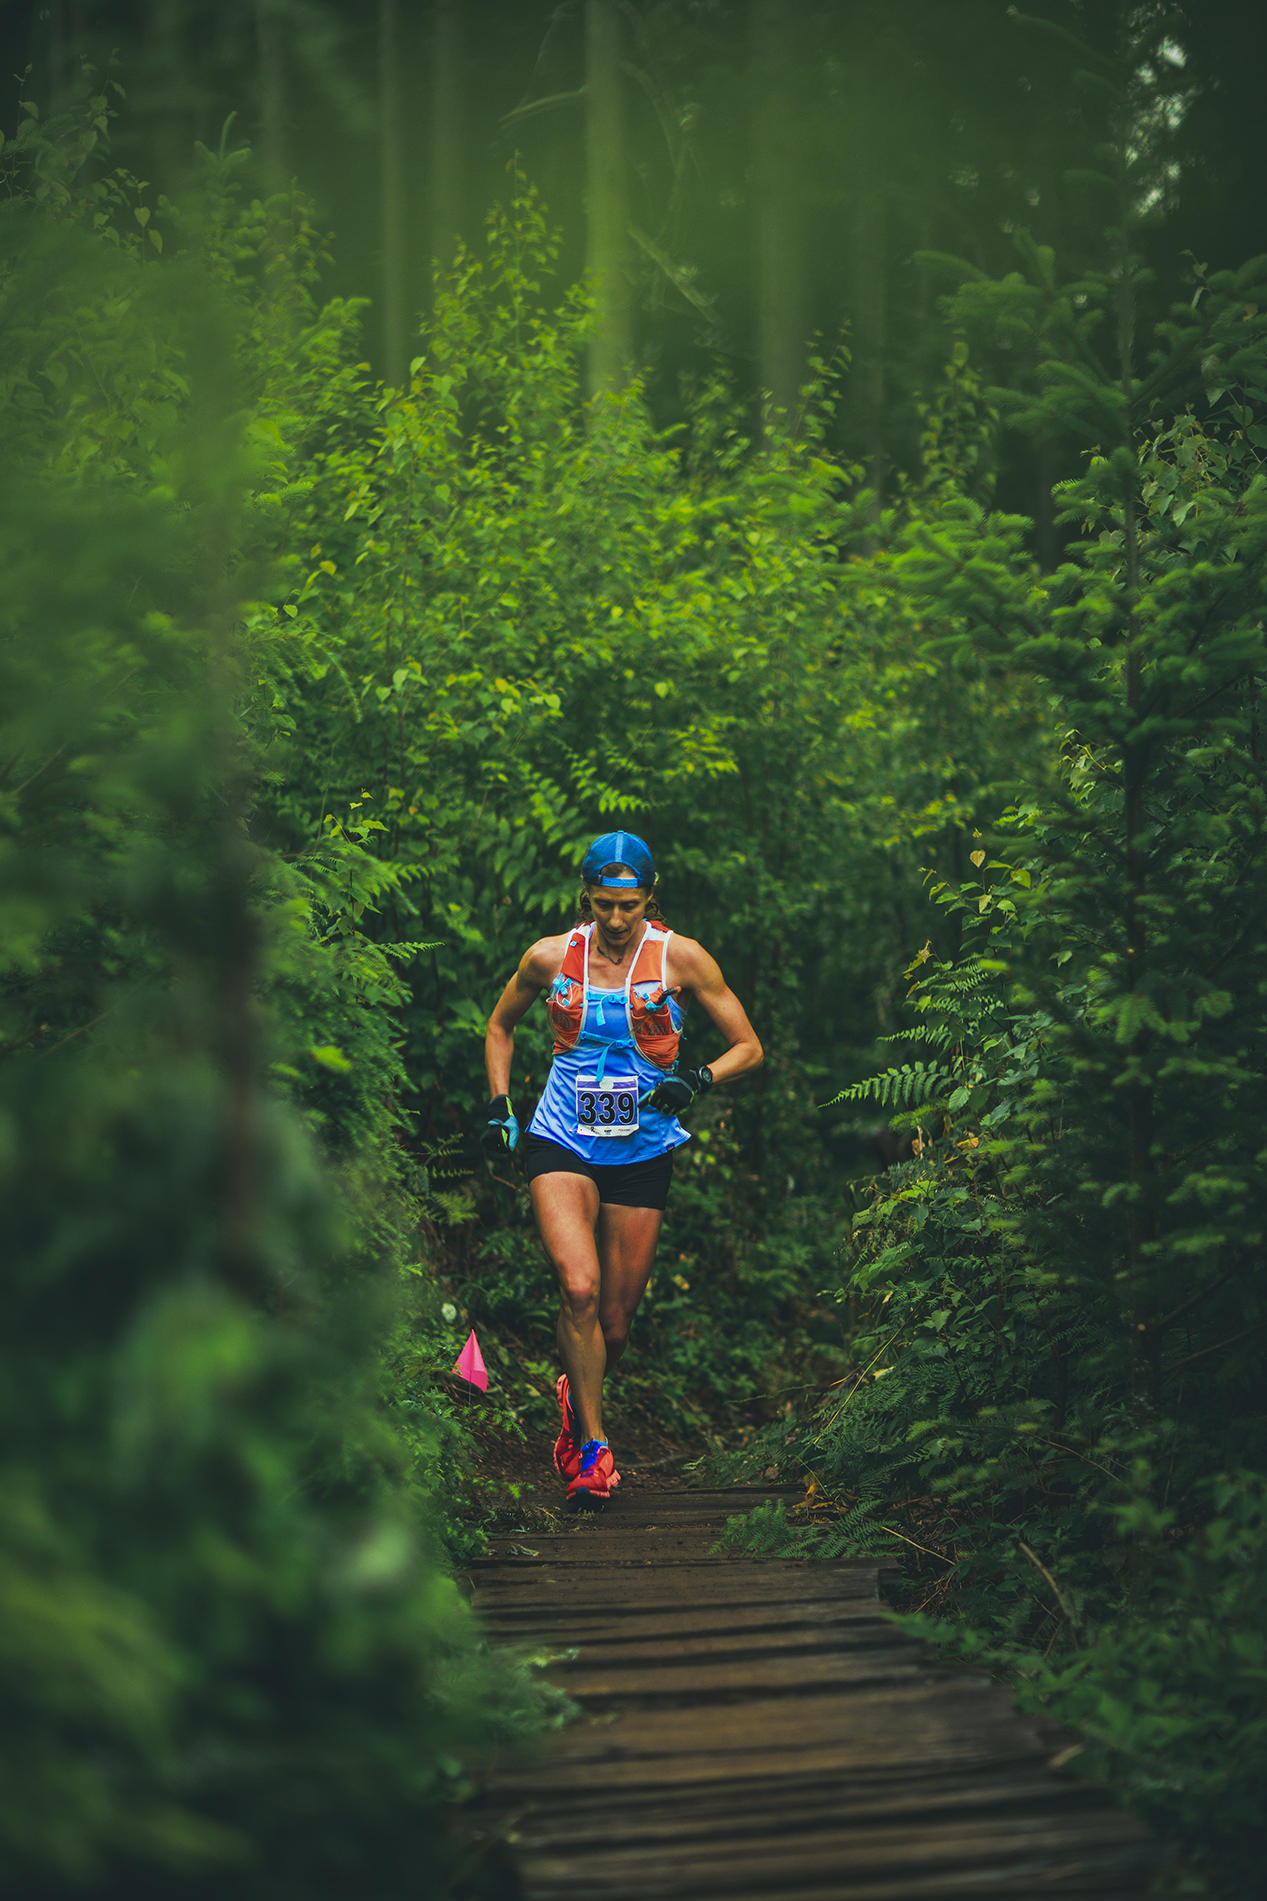 Fraser Valley Trail Races - Bear Mountain - IMG_2367 by Brice Ferre Studio - Vancouver Portrait Adventure and Athlete Photographer.jpg